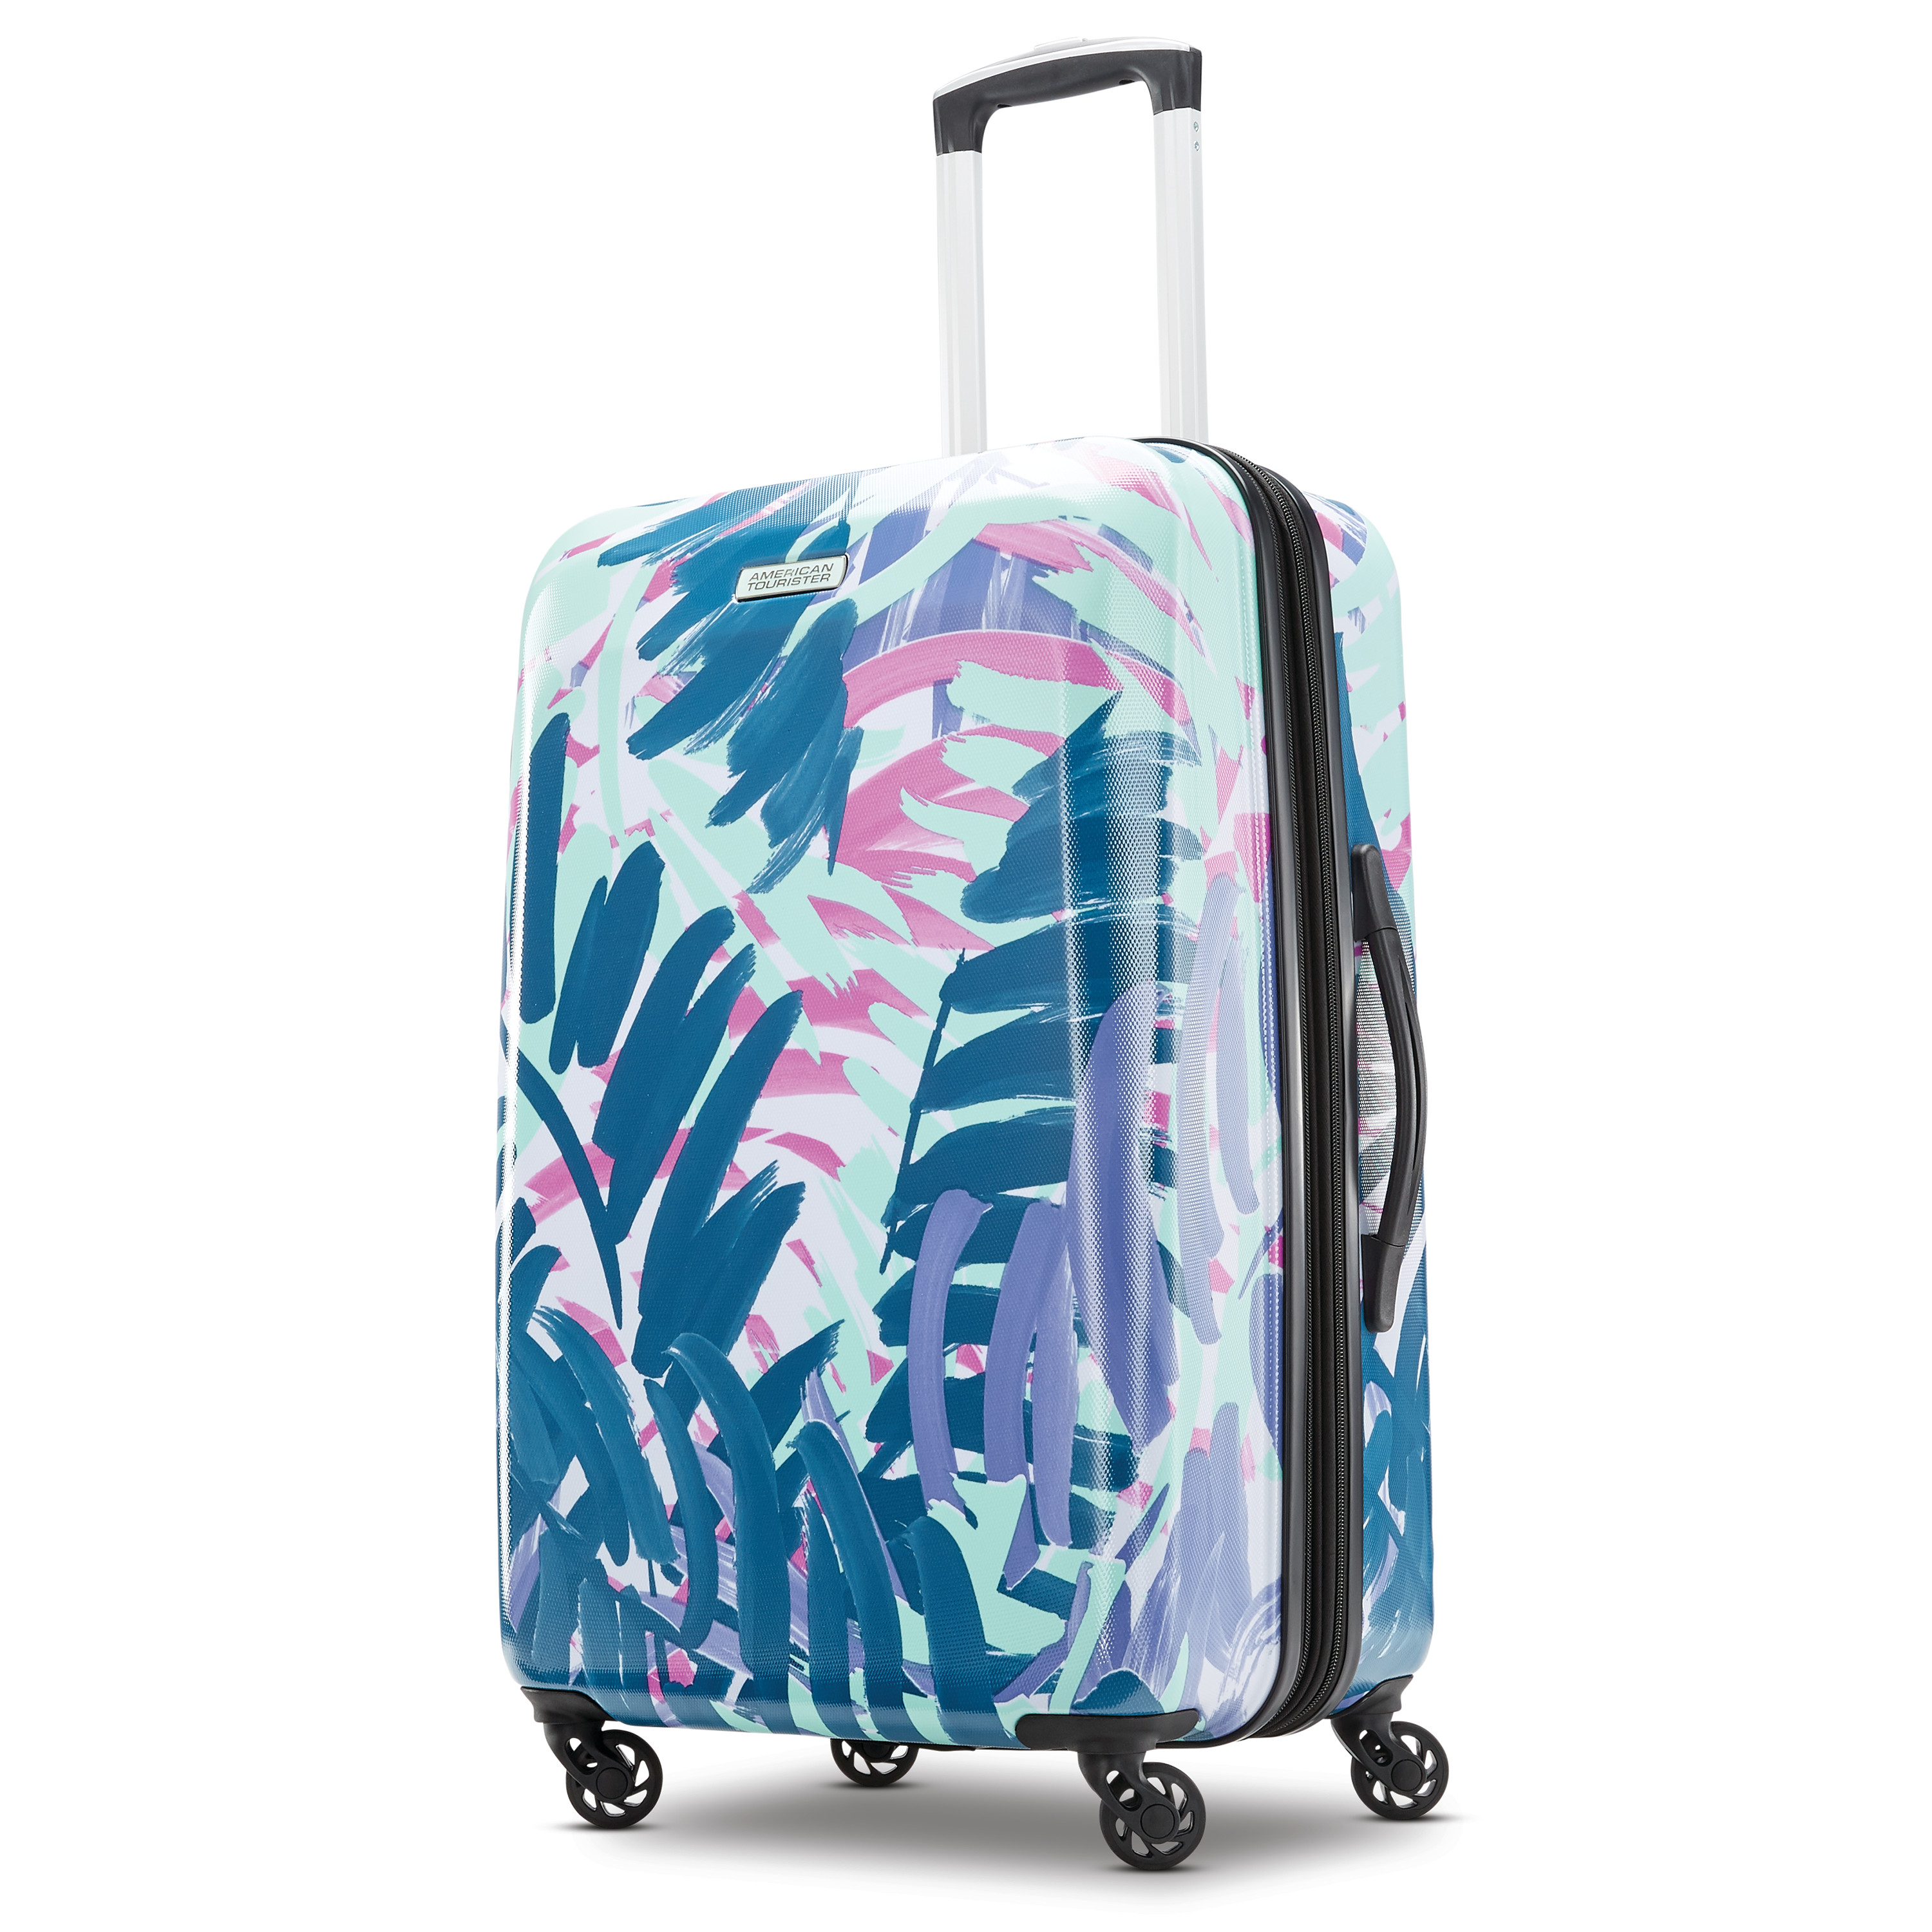 Turquoise Oil Paint Marble Traveler Lightweight Rotating Luggage Cover Can Carry With You Can Expand Travel Bag Trolley Rolling Luggage Cover